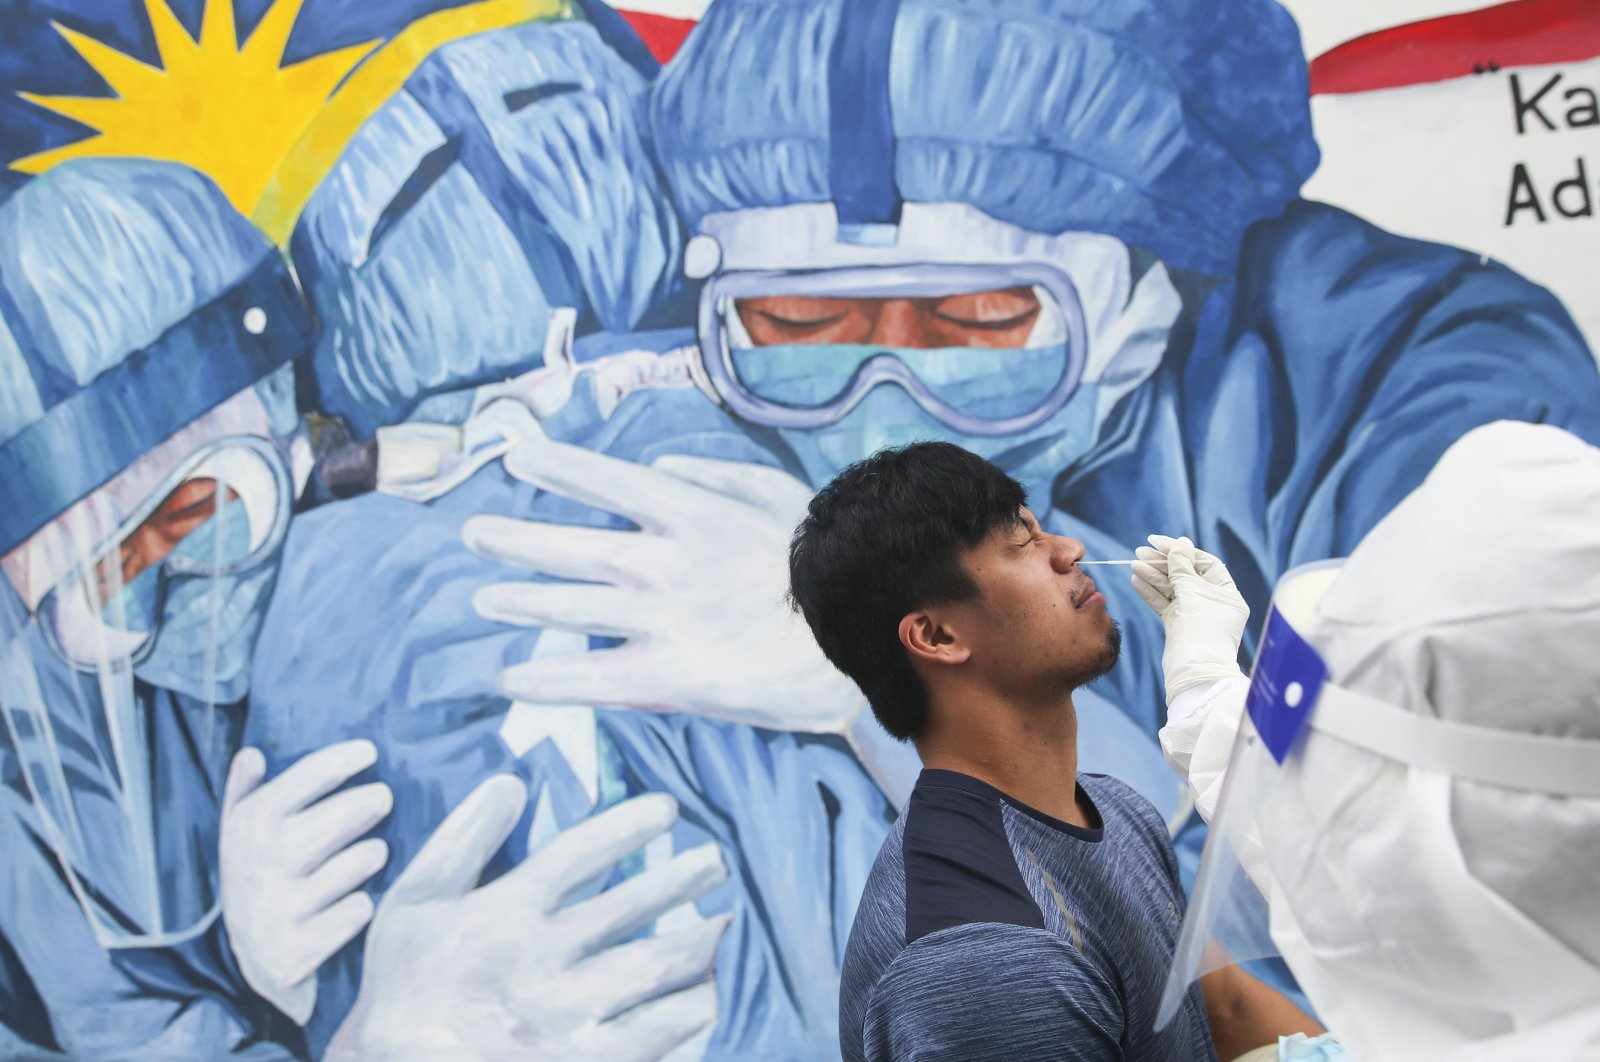 Medical personnel collects a swab sample from a man during a COVID-19 test at Ajwa clinic in Shah Alam, outside Kuala Lumpur, Malaysia, Jan. 11, 2021. (EPA-EFE Photo)